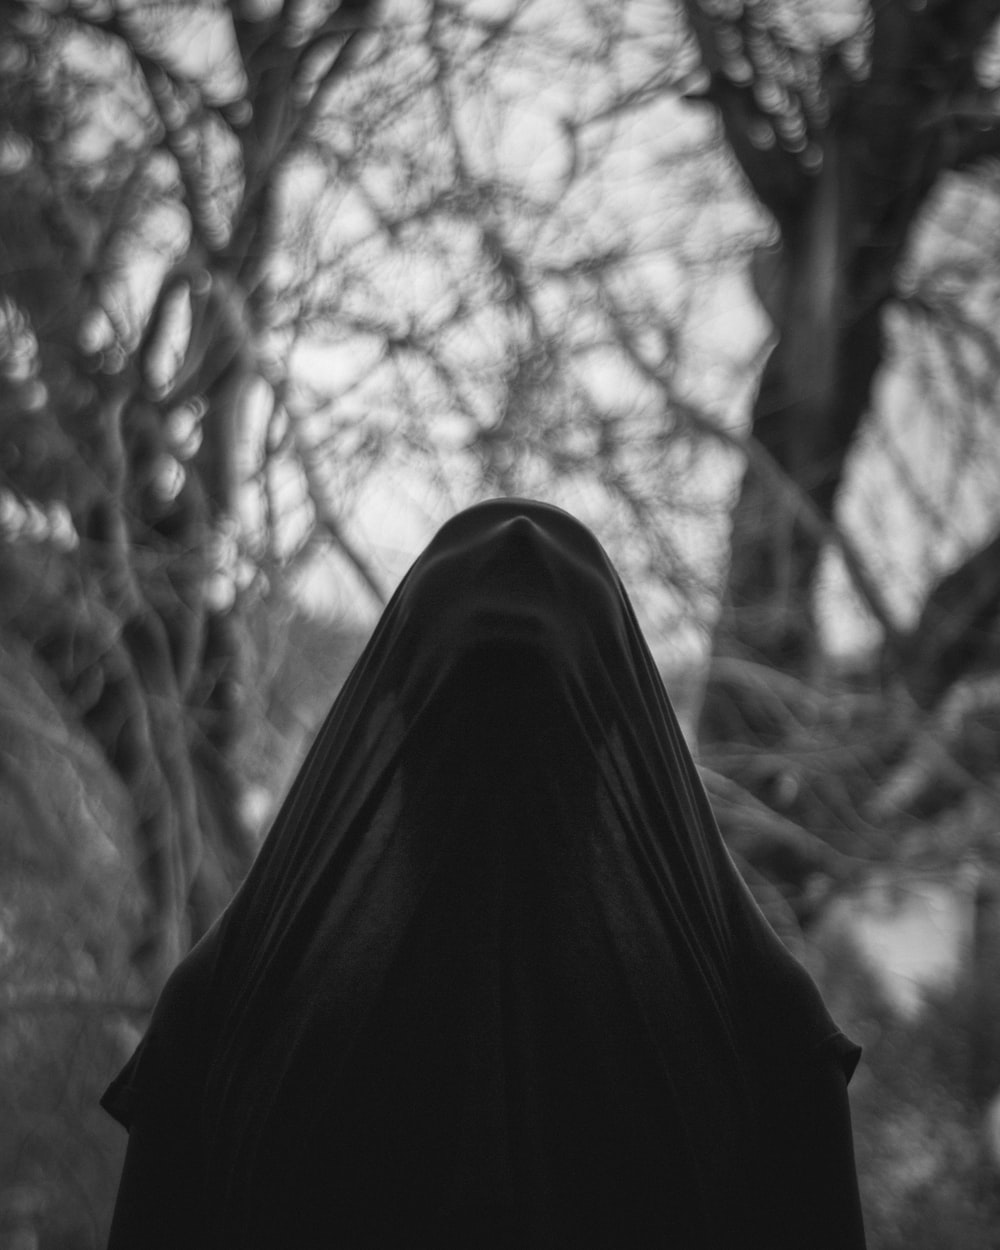 grayscale photo of person in black hijab